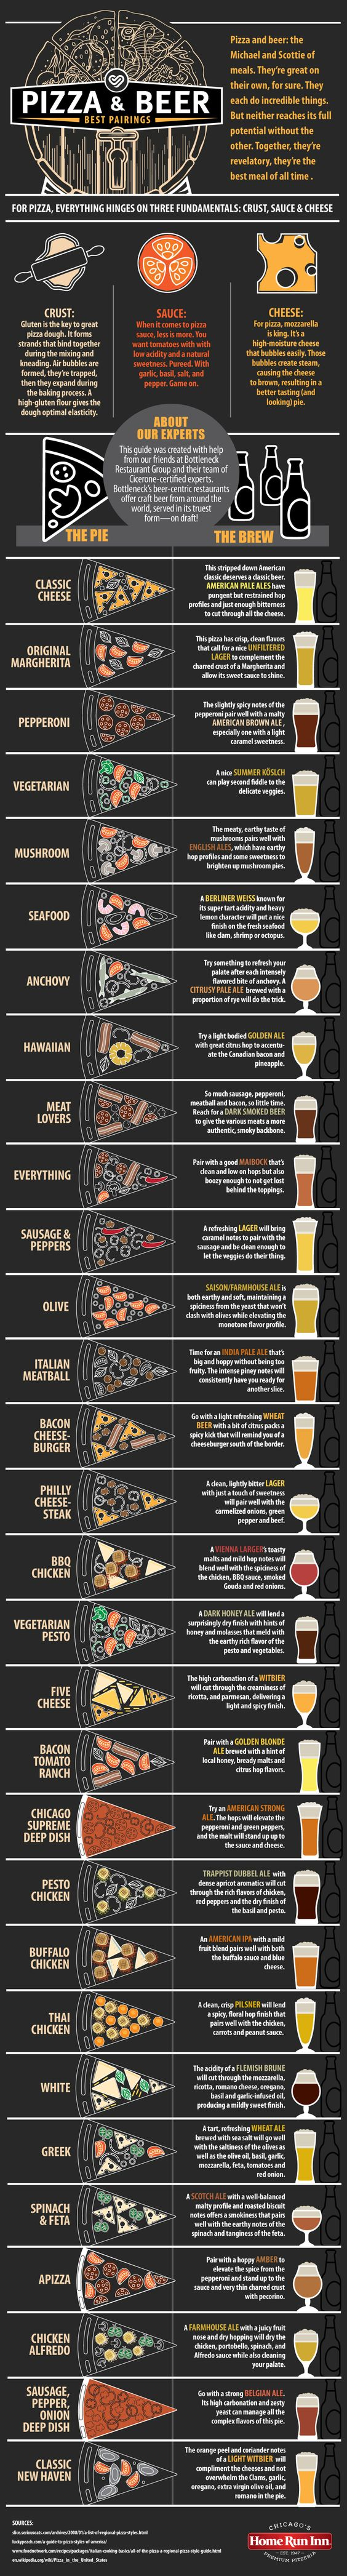 The Ultimate Guide to Food and Beer Pairings #Infographic #Beer #Food #Pizza